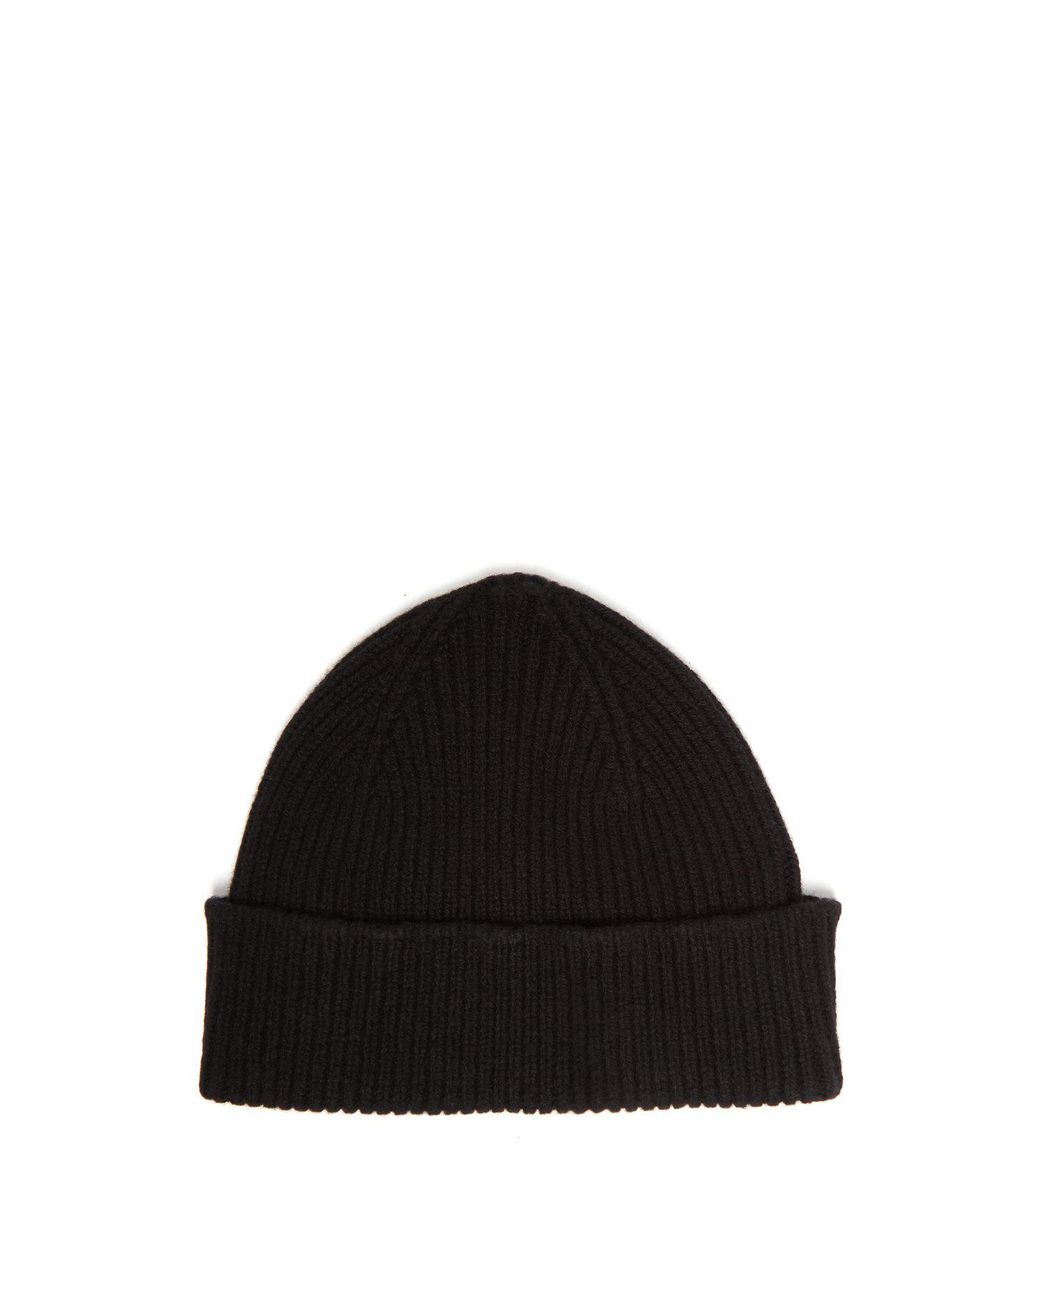 8af6cb1d6 Paul Smith Ribbed Cashmere Blend Beanie Hat in Black for Men - Save ...